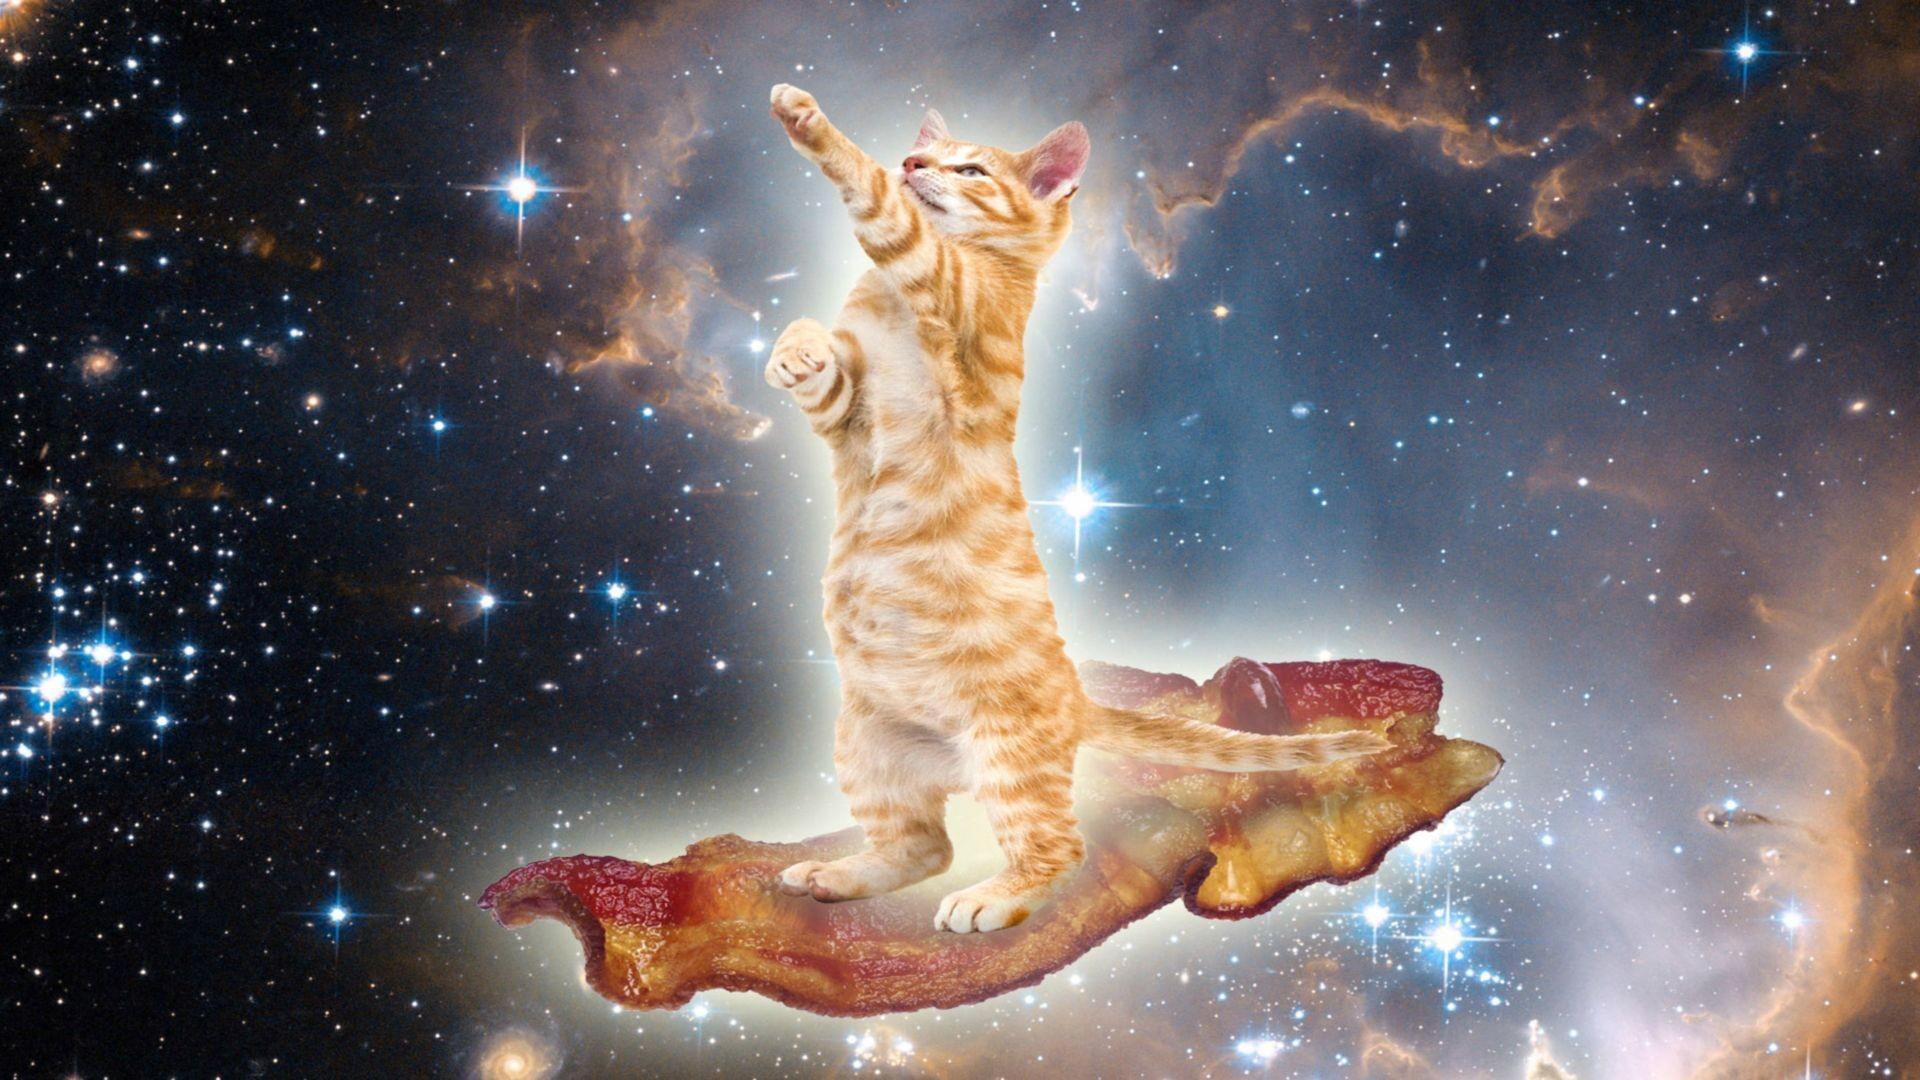 Res: 1920x1080, Bacon wallpapers universe. | Cat cruising through space ...